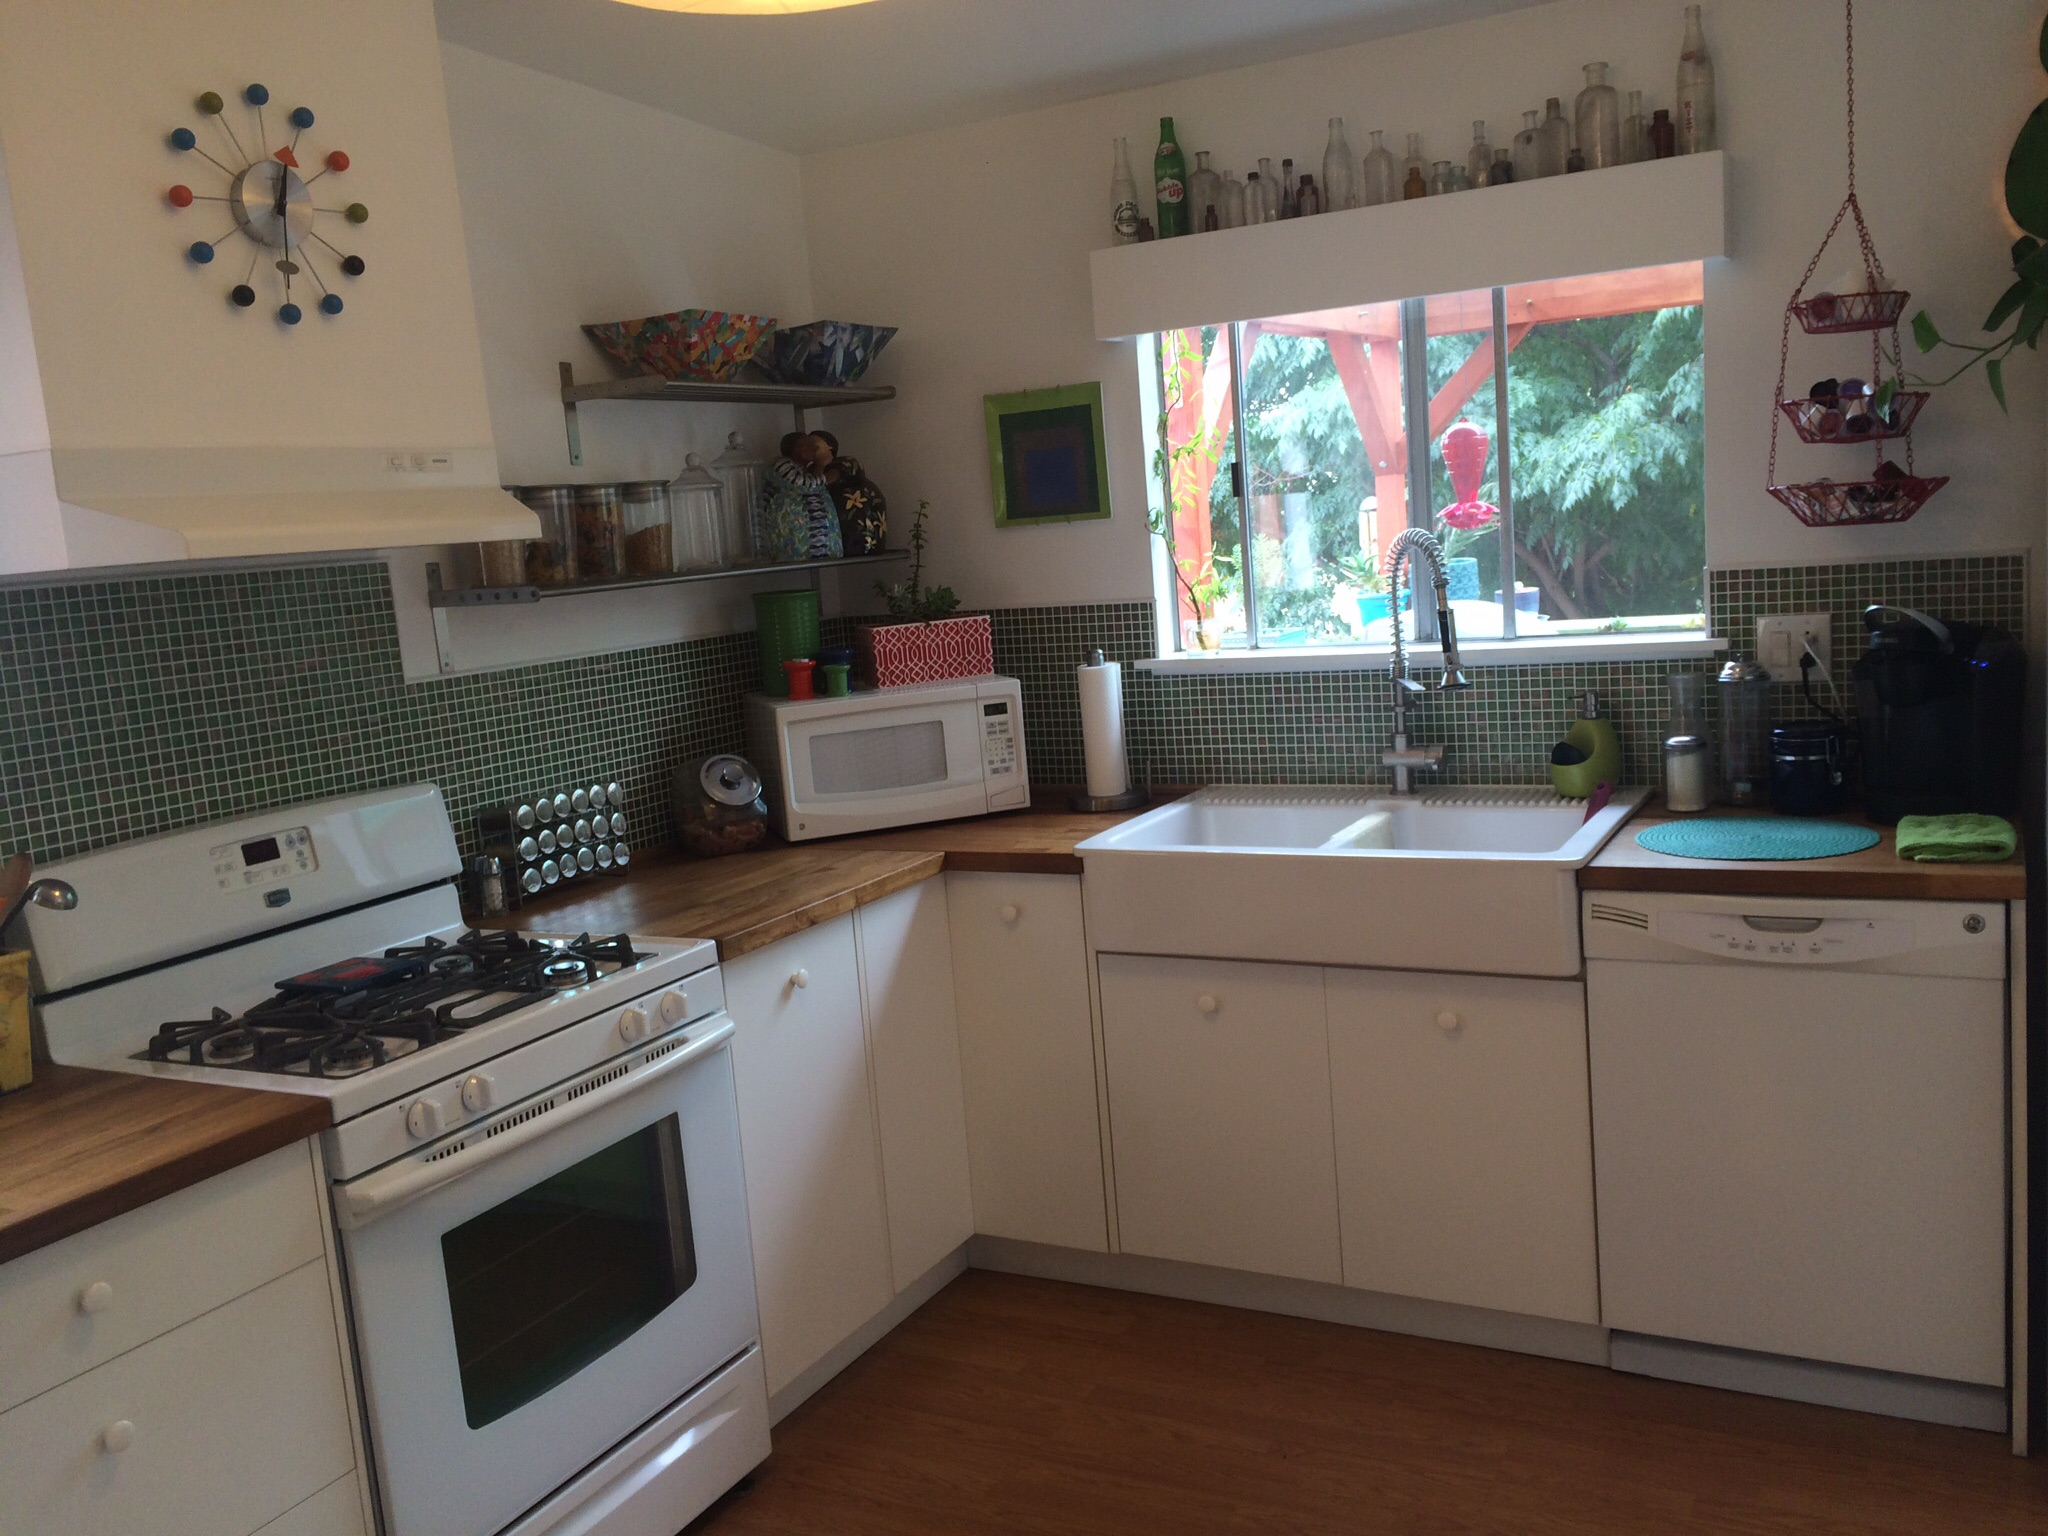 Clean, maintained kitchen.